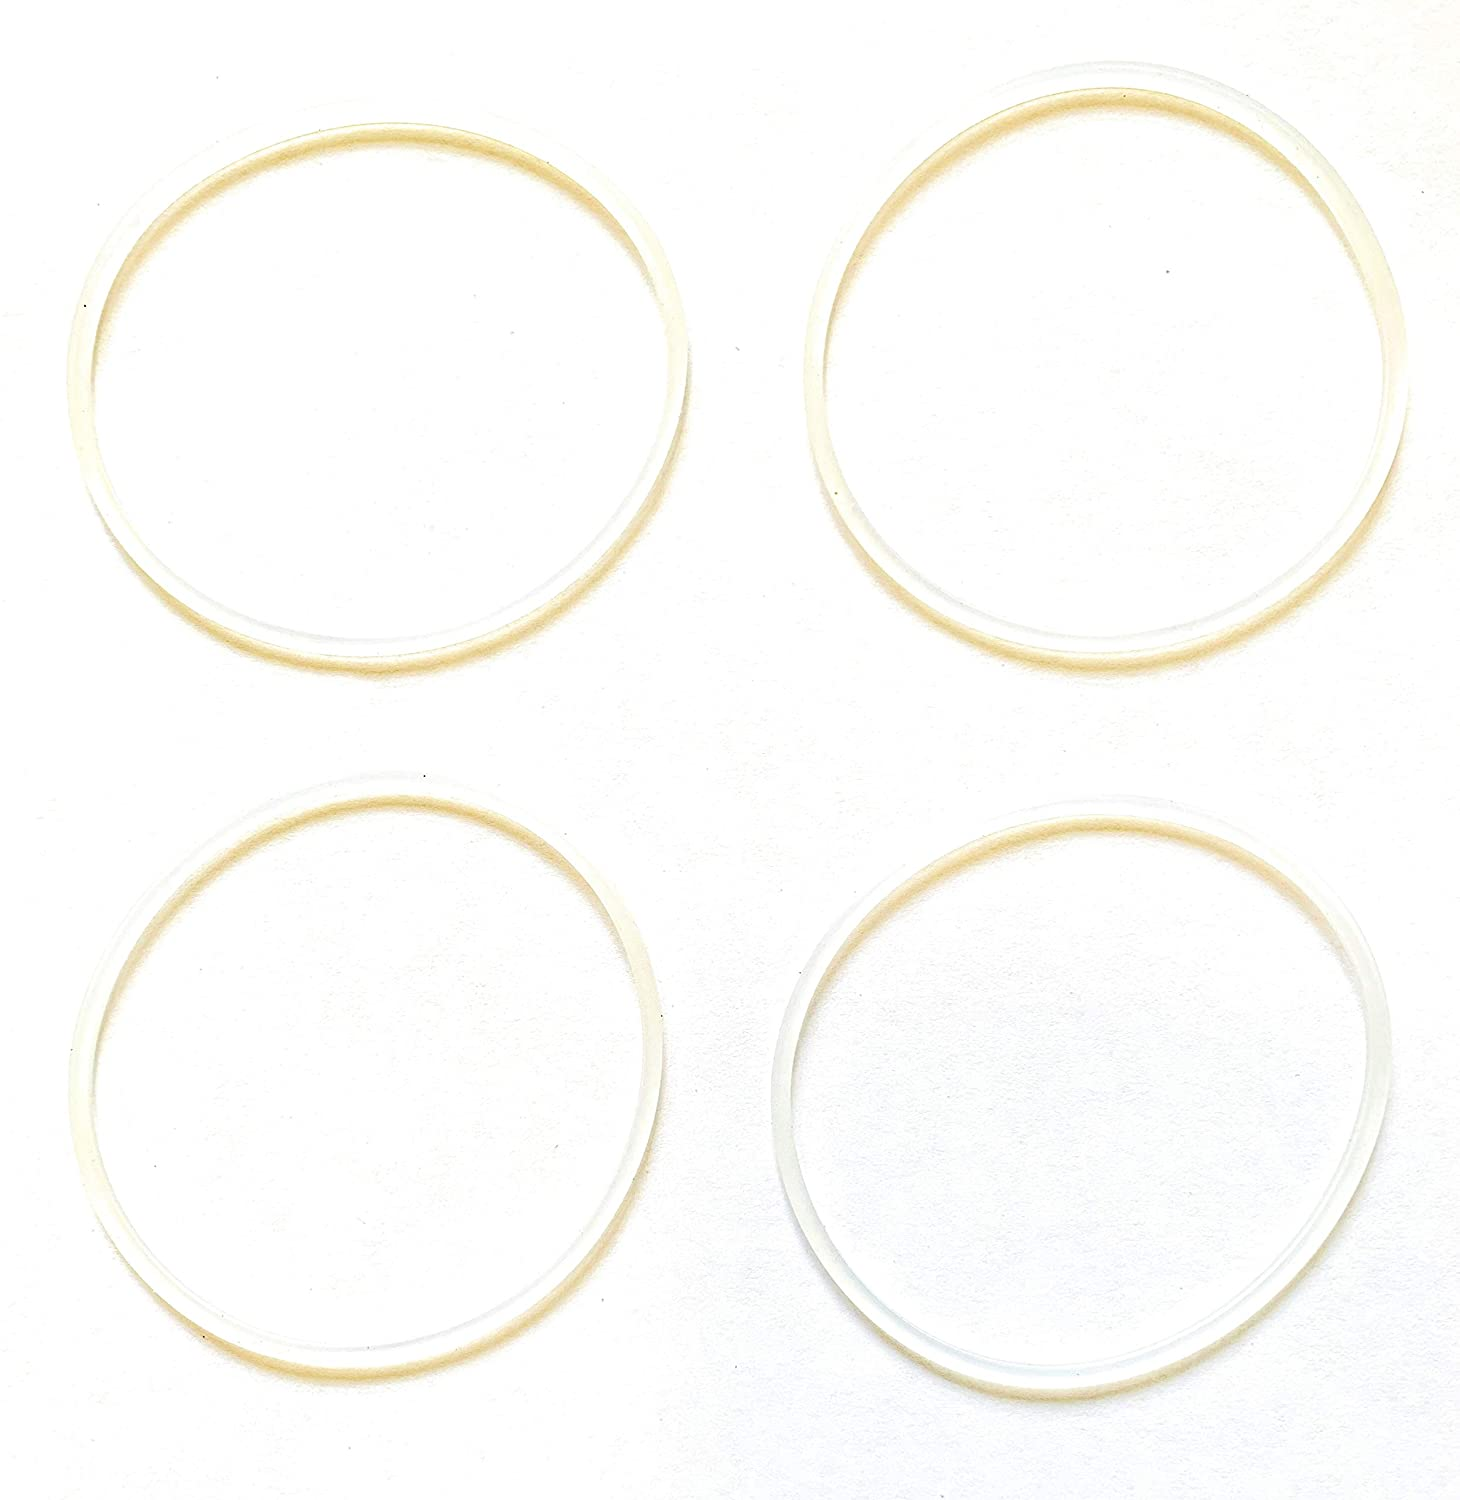 Fab International Replacement Gasket Compatible with Cooks Personnal Sport Blender 4 Pack (AFTER MARKET PART)